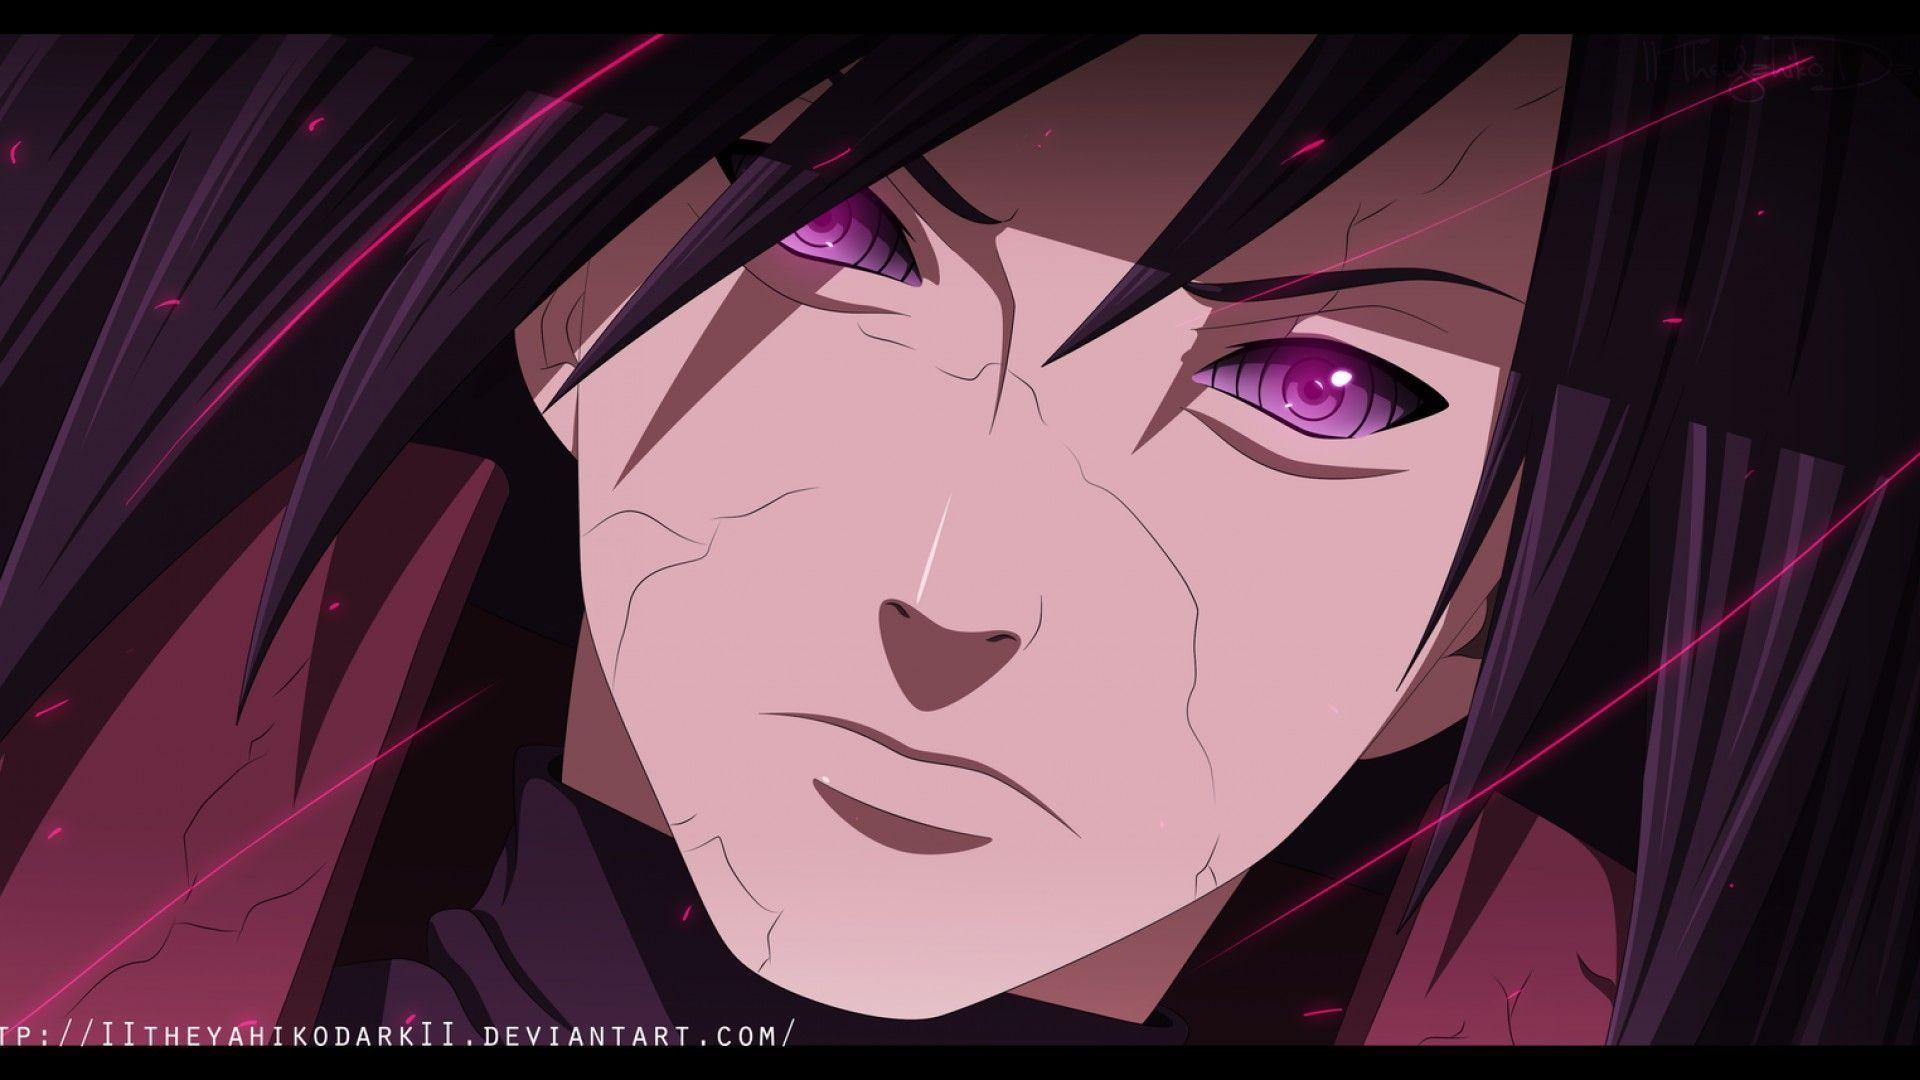 Madara Uchiha Rinnegan Wallpapers Wallpaper Cave Download this wallpaper with hd and different oneplus 8 pro, oppo find x2 | samsung galaxy s20 ultra, samsung galaxy s20+ plus s,galaxy s2,galaxy s plus,galaxy s,htc evo,htc desire hd,htc desire,alcatel one touch ultra 995. madara uchiha rinnegan wallpapers